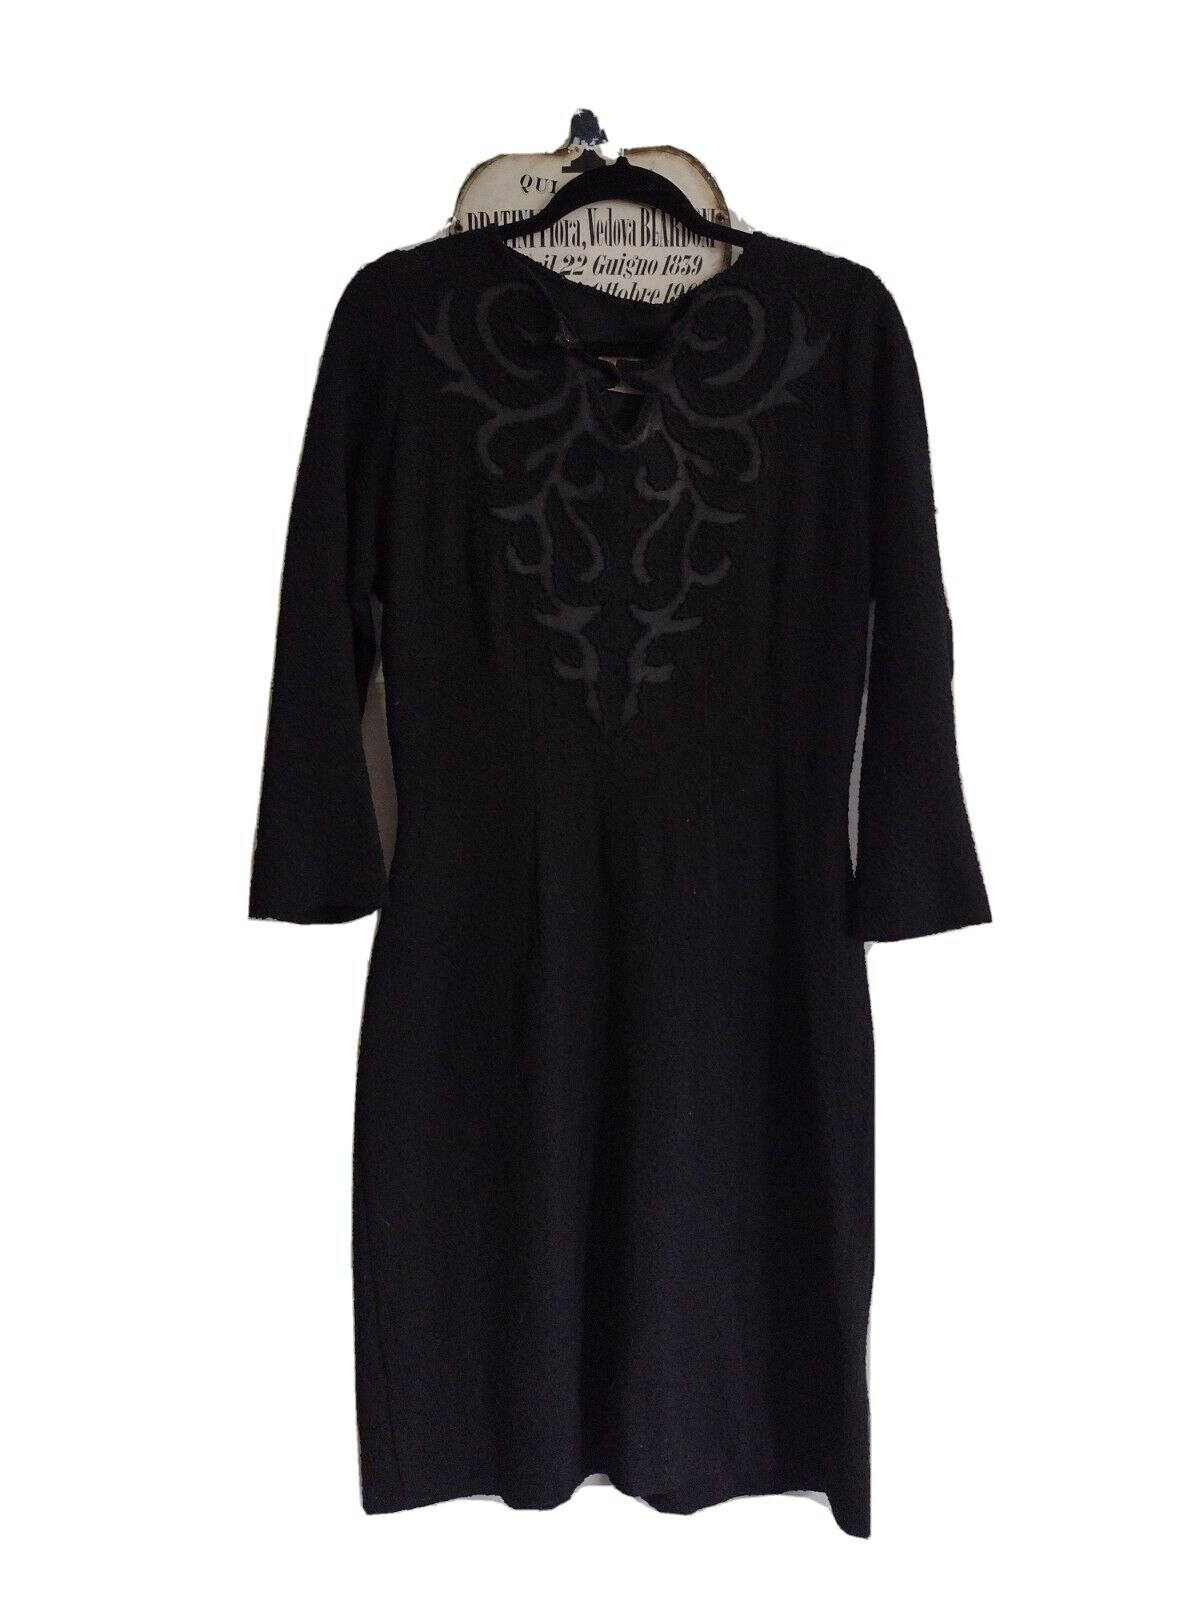 1940s Black Knit Dress With Satin Detail In Volup… - image 1